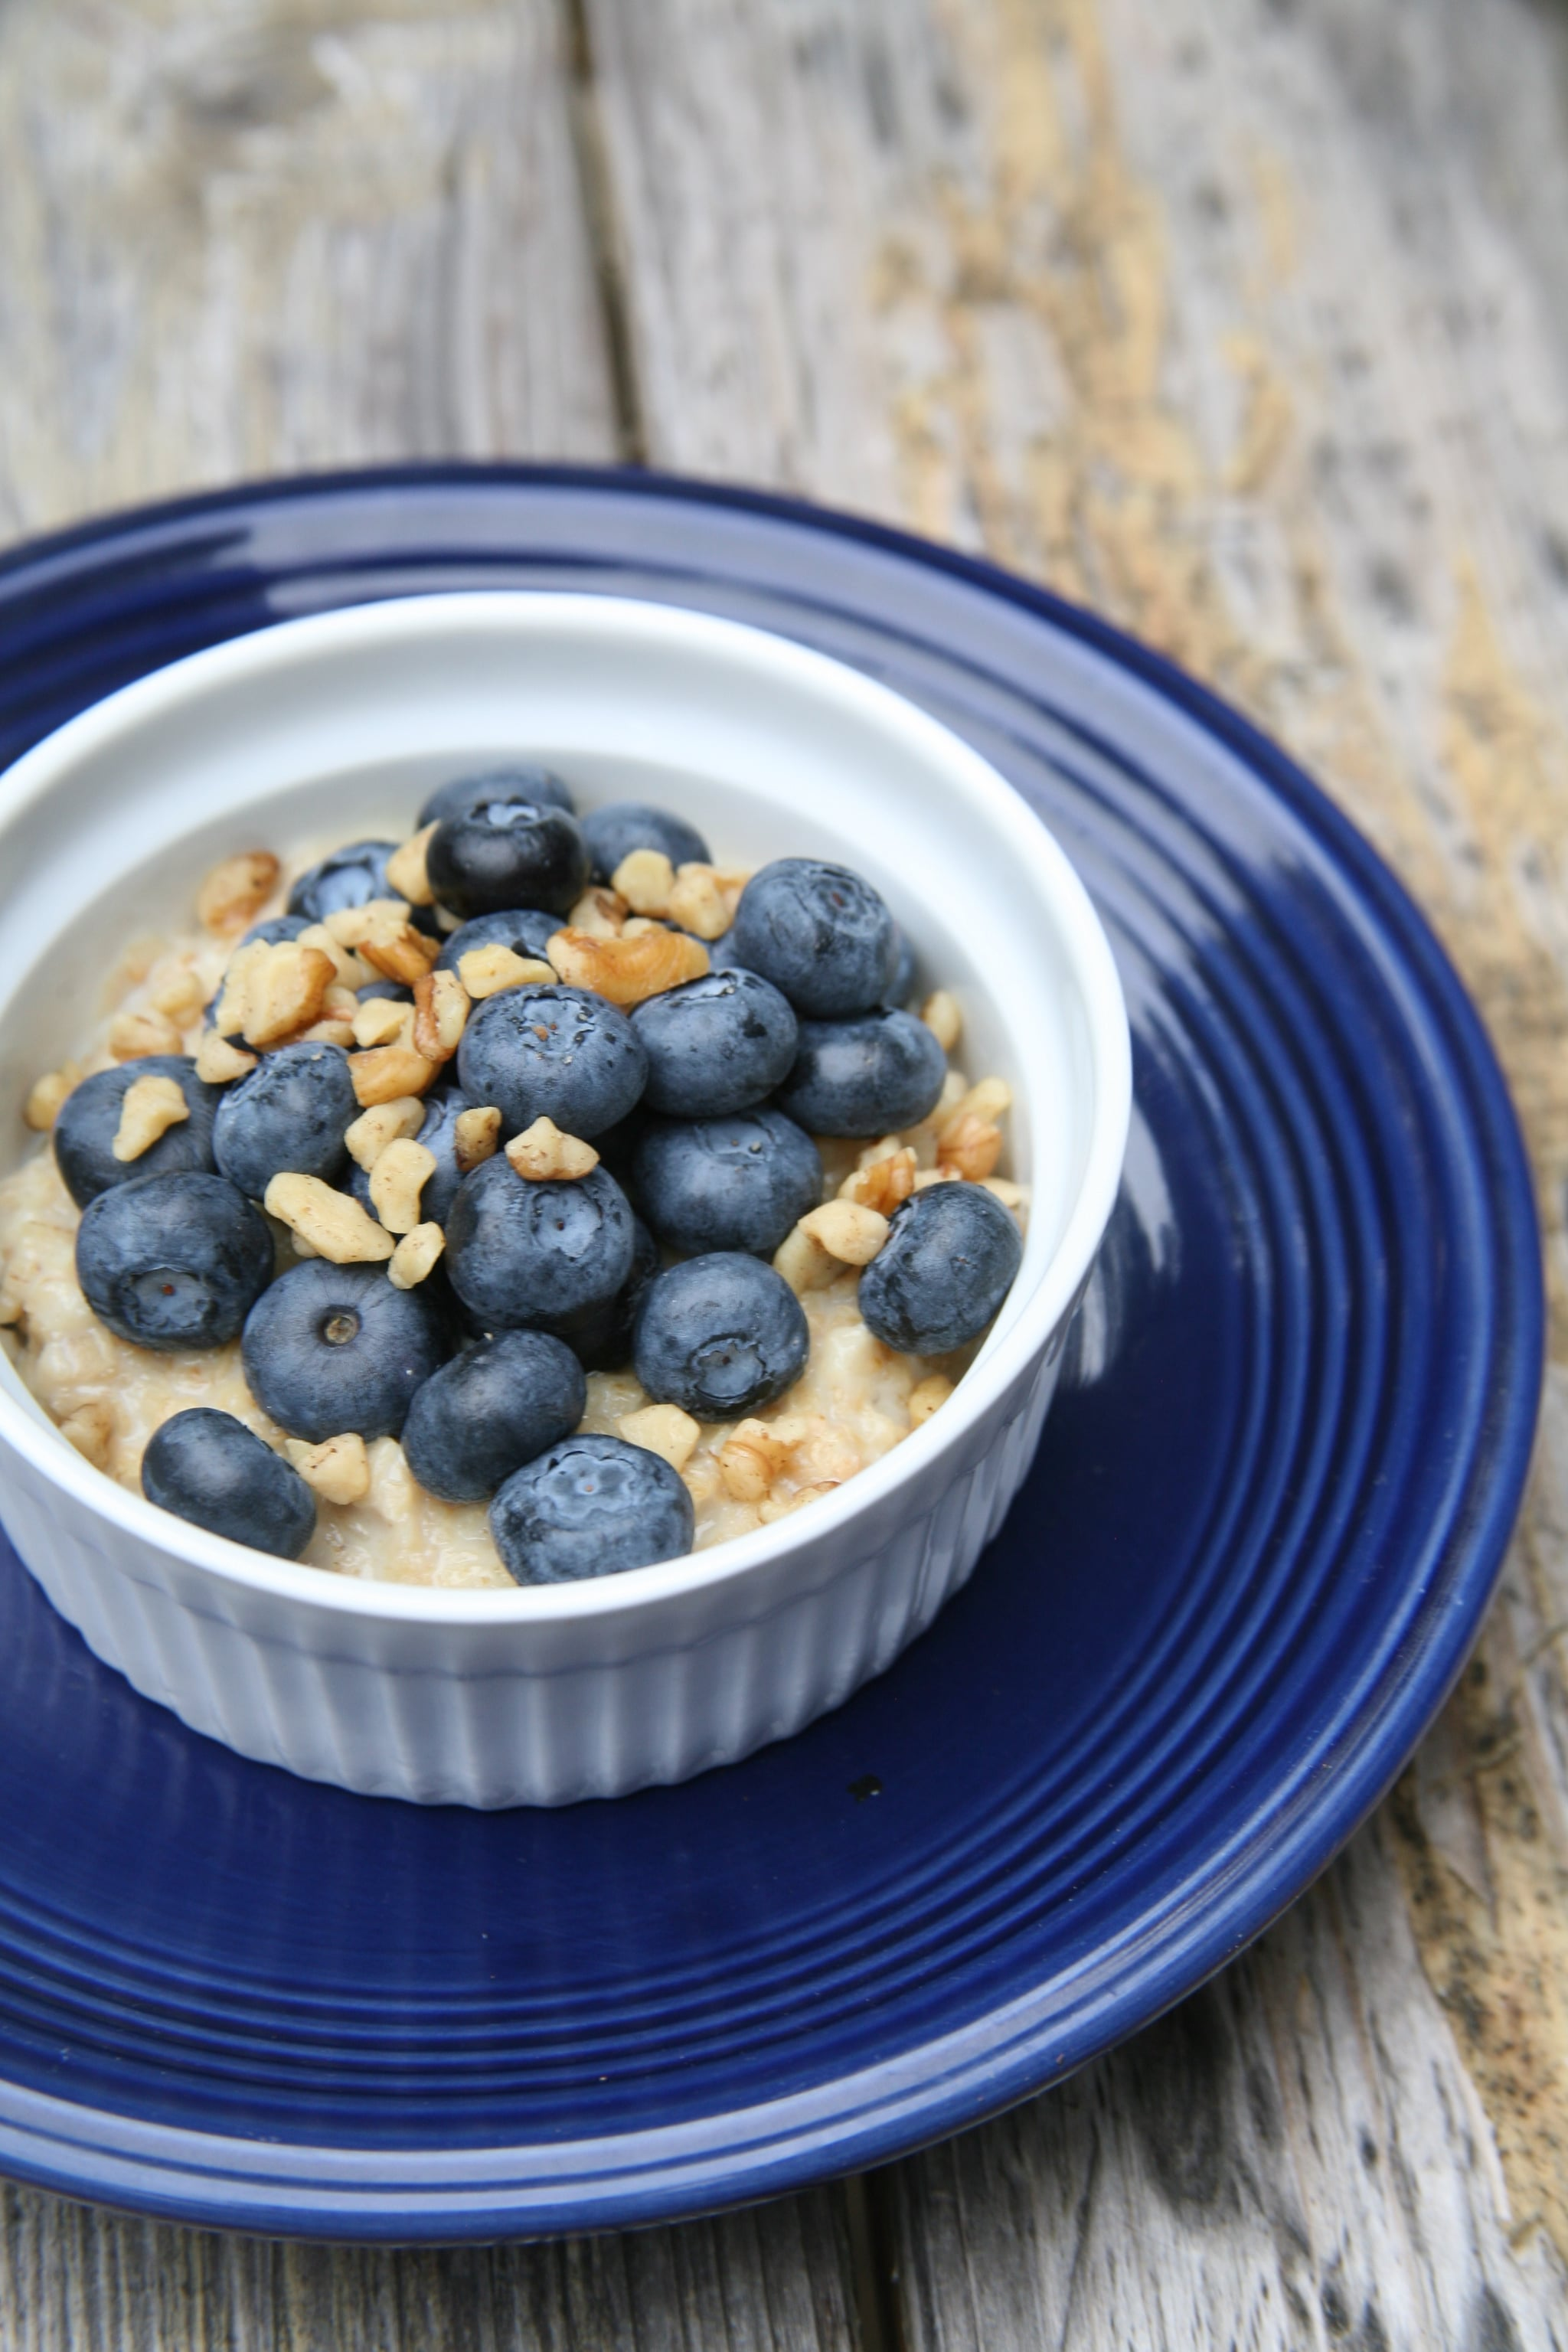 This Dietitian's Cooking Hack Will Make Your Oatmeal More Filling (and Help You Lose Weight)